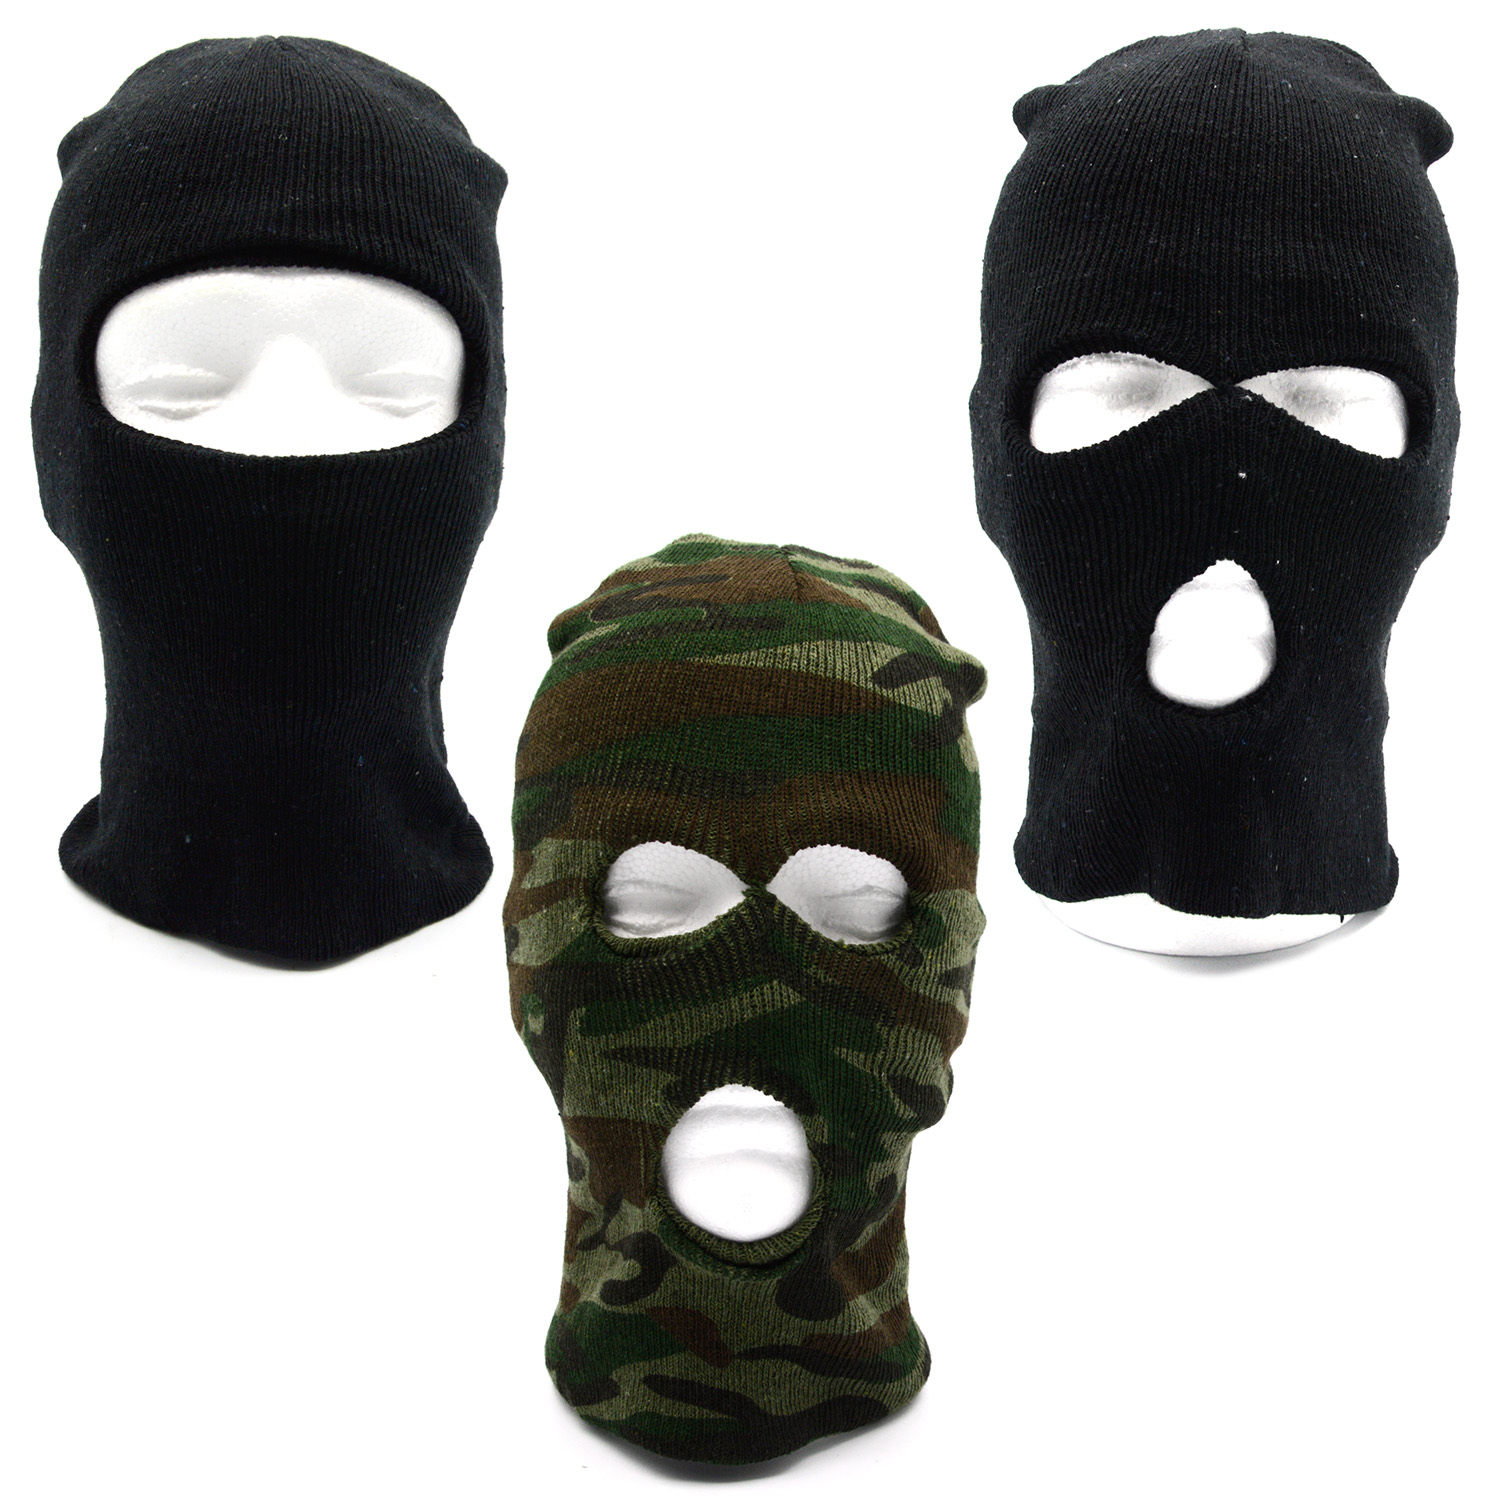 Behogar 3 style Design Ski Face Mask Hat Headgear Motorcycle Cycling  Outdoor Sports Balaclava UV Protection Head Cover-in Party Masks from Home    Garden on ... 74d6006aca8